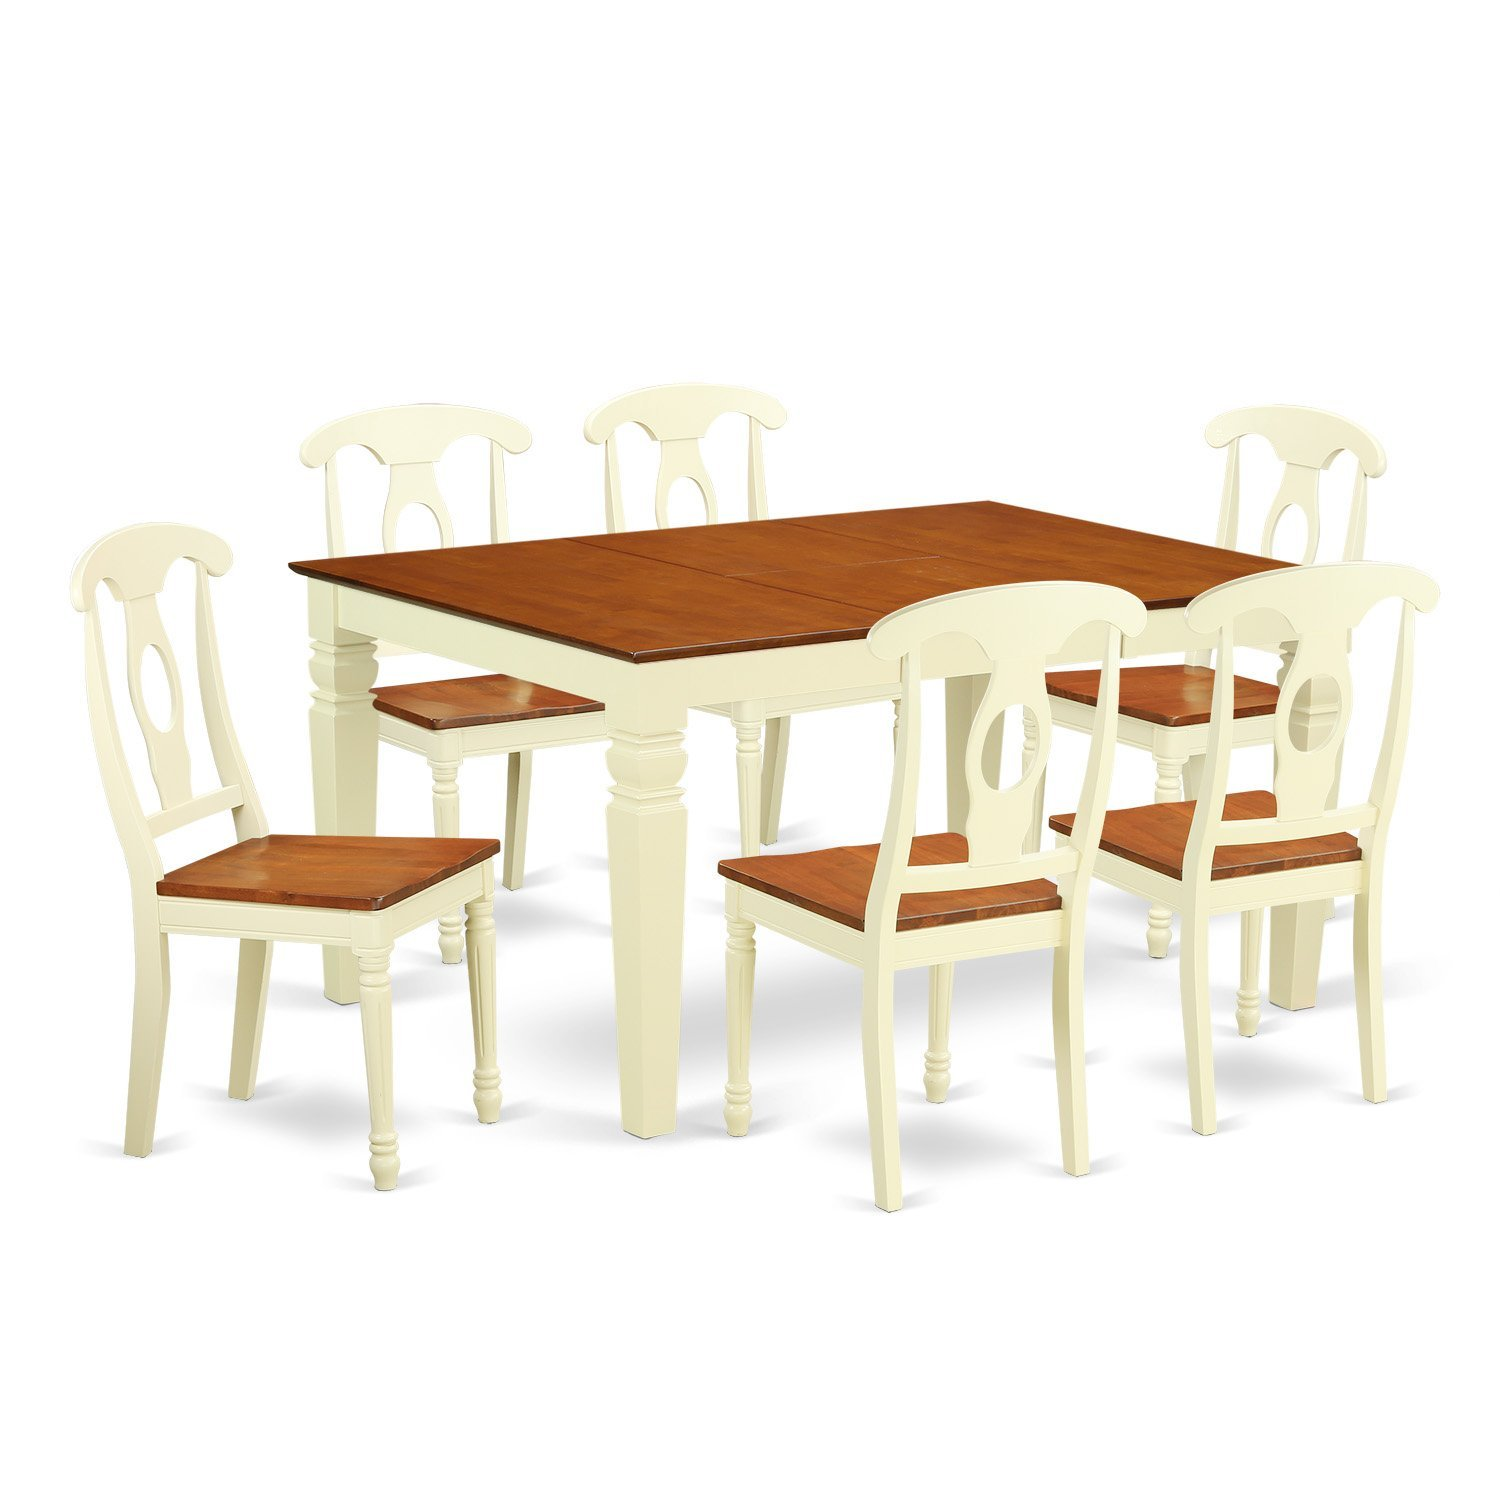 East West Furniture Weston WEKE7-BMK-W 7 Pc Kitchen Set with a Dinning Table and 6 Wood Dining Chairs, Buttermilk and Cherry